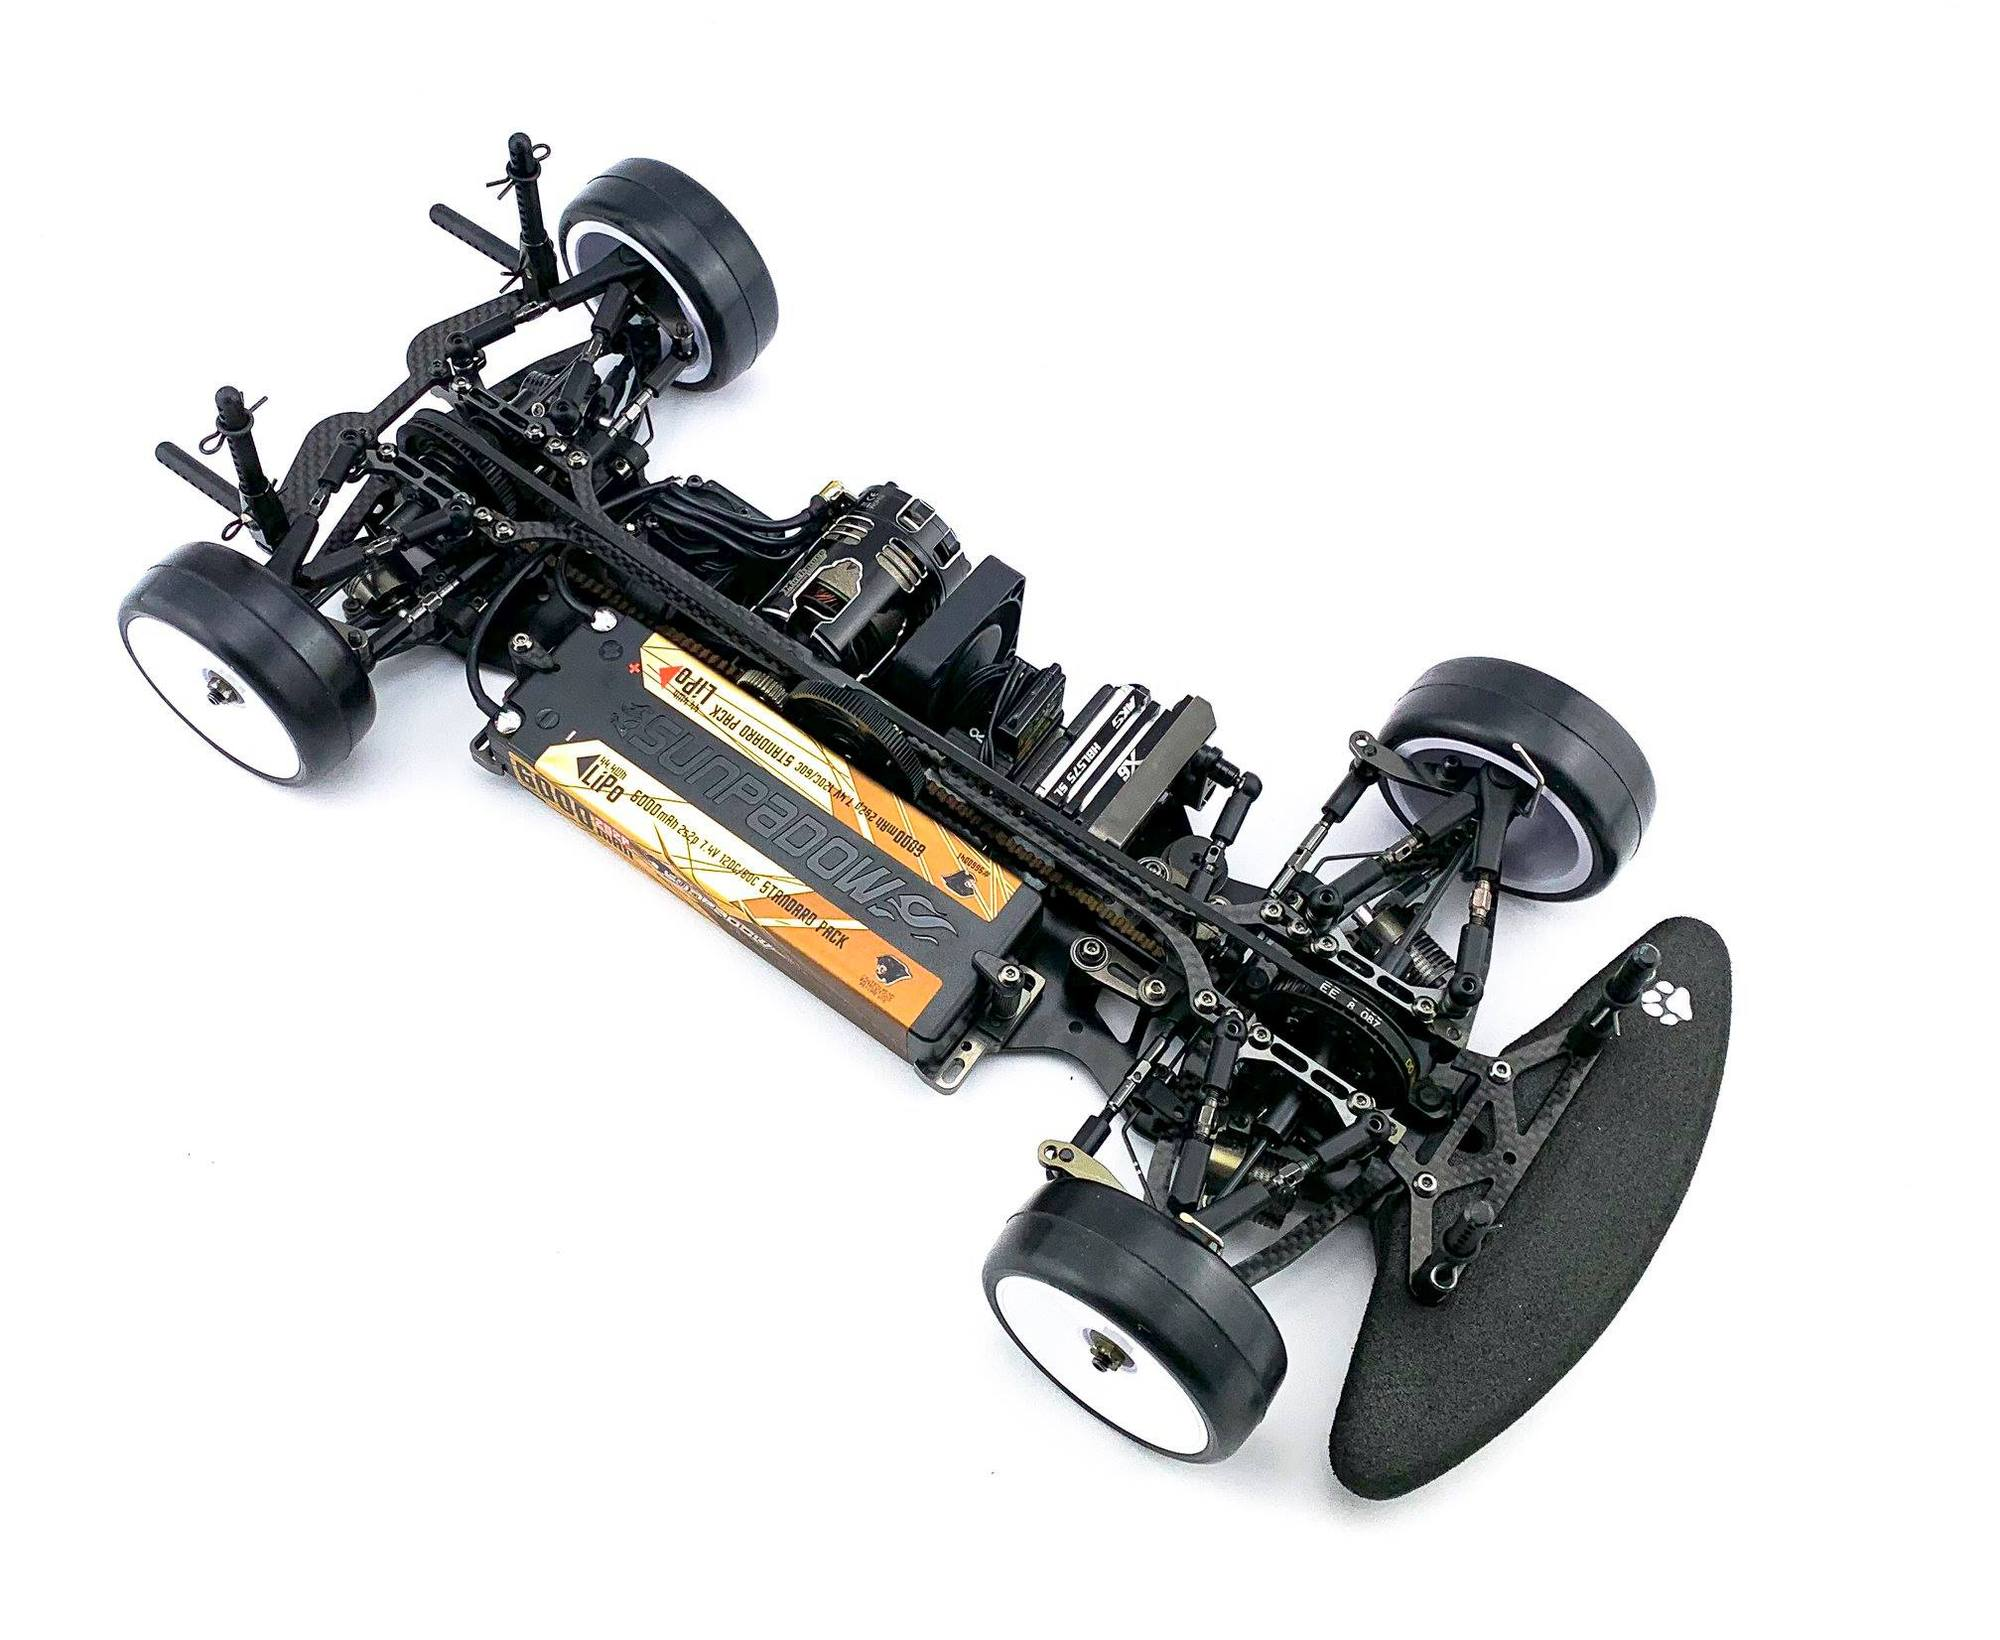 AWESOMATIX A800MMXA TOURING CAR KIT - ALLOY CHASSIS USA SPEC ( PRE ORDER) - GRIPWORKS RC